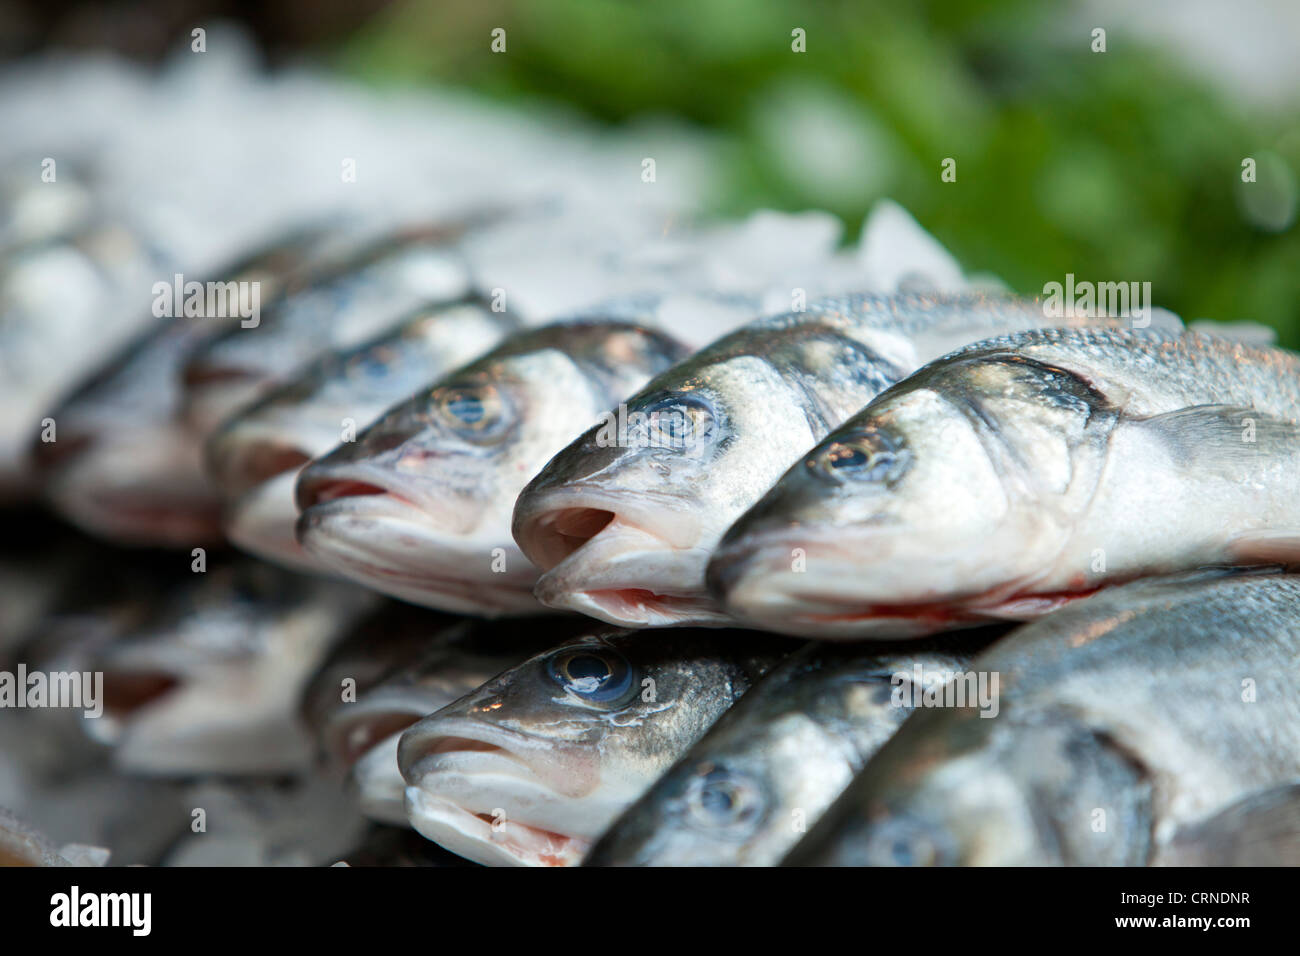 Fresh fish for sale in Borough Market. - Stock Image